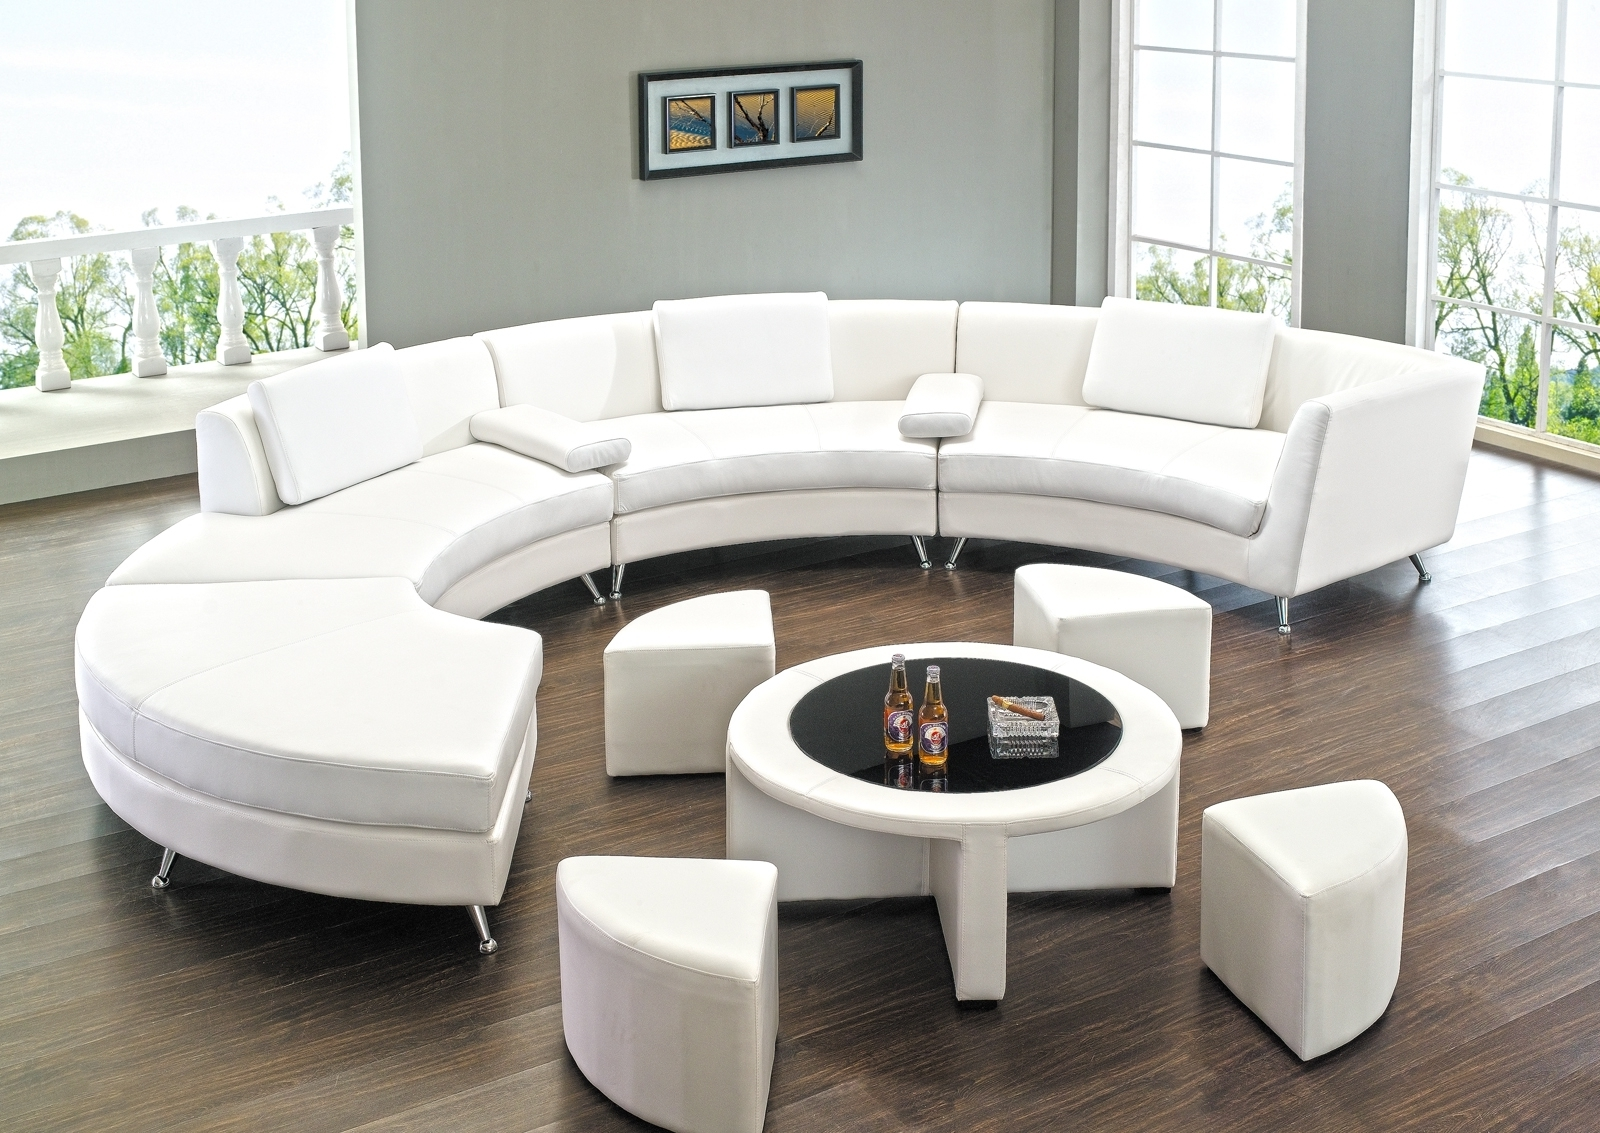 Round Sectional Sofa Has One Of The Best Kind Of Other Is Within Most Recently Released Circular Sectional Sofas (View 3 of 15)